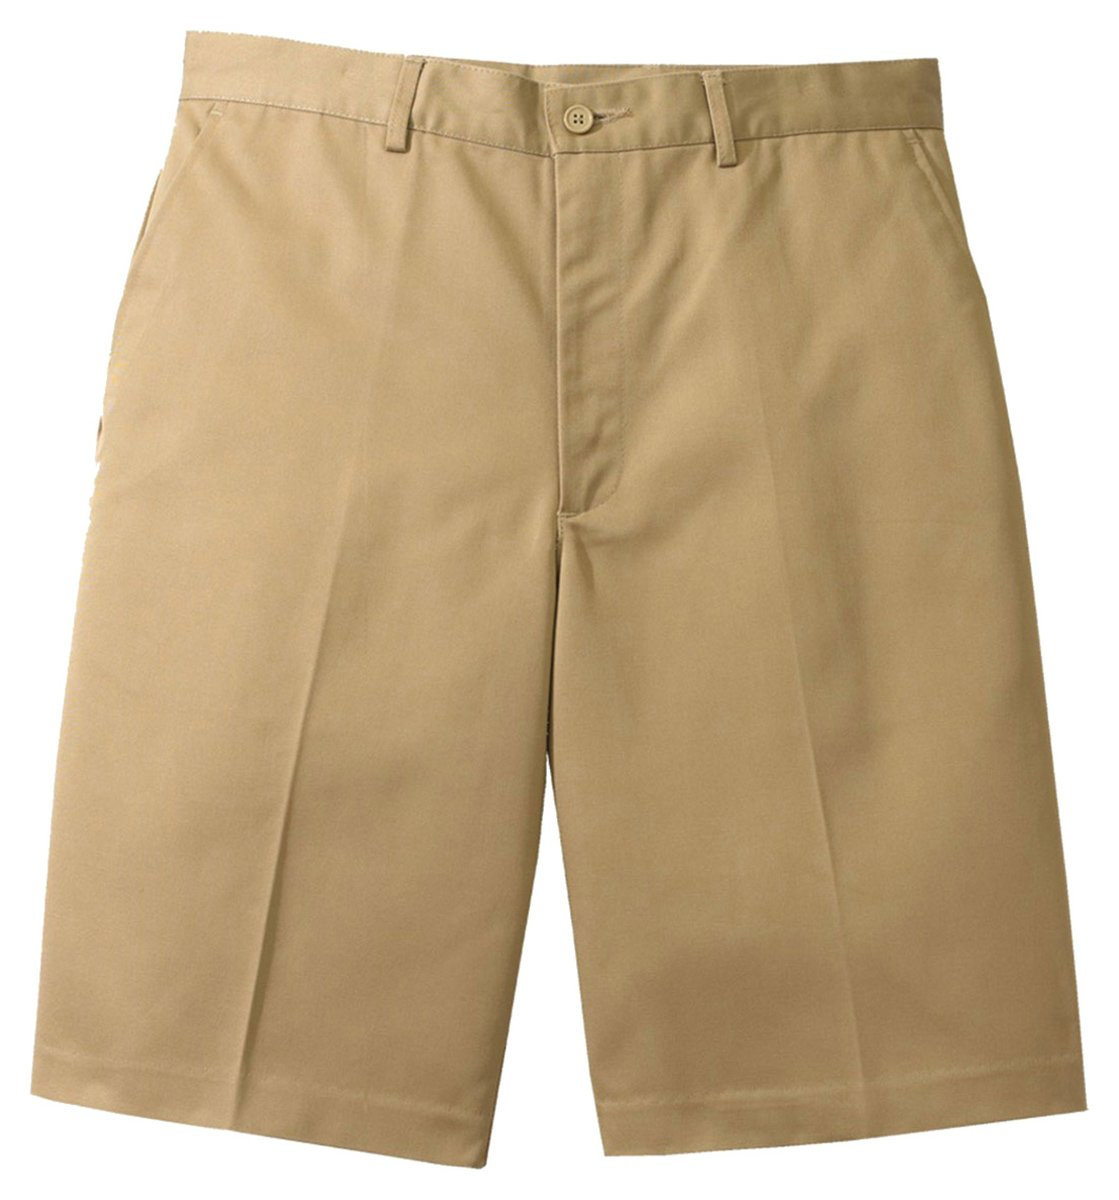 Ed Garments Men's Flat Front Casual Chino Blend Short, TAN, 40